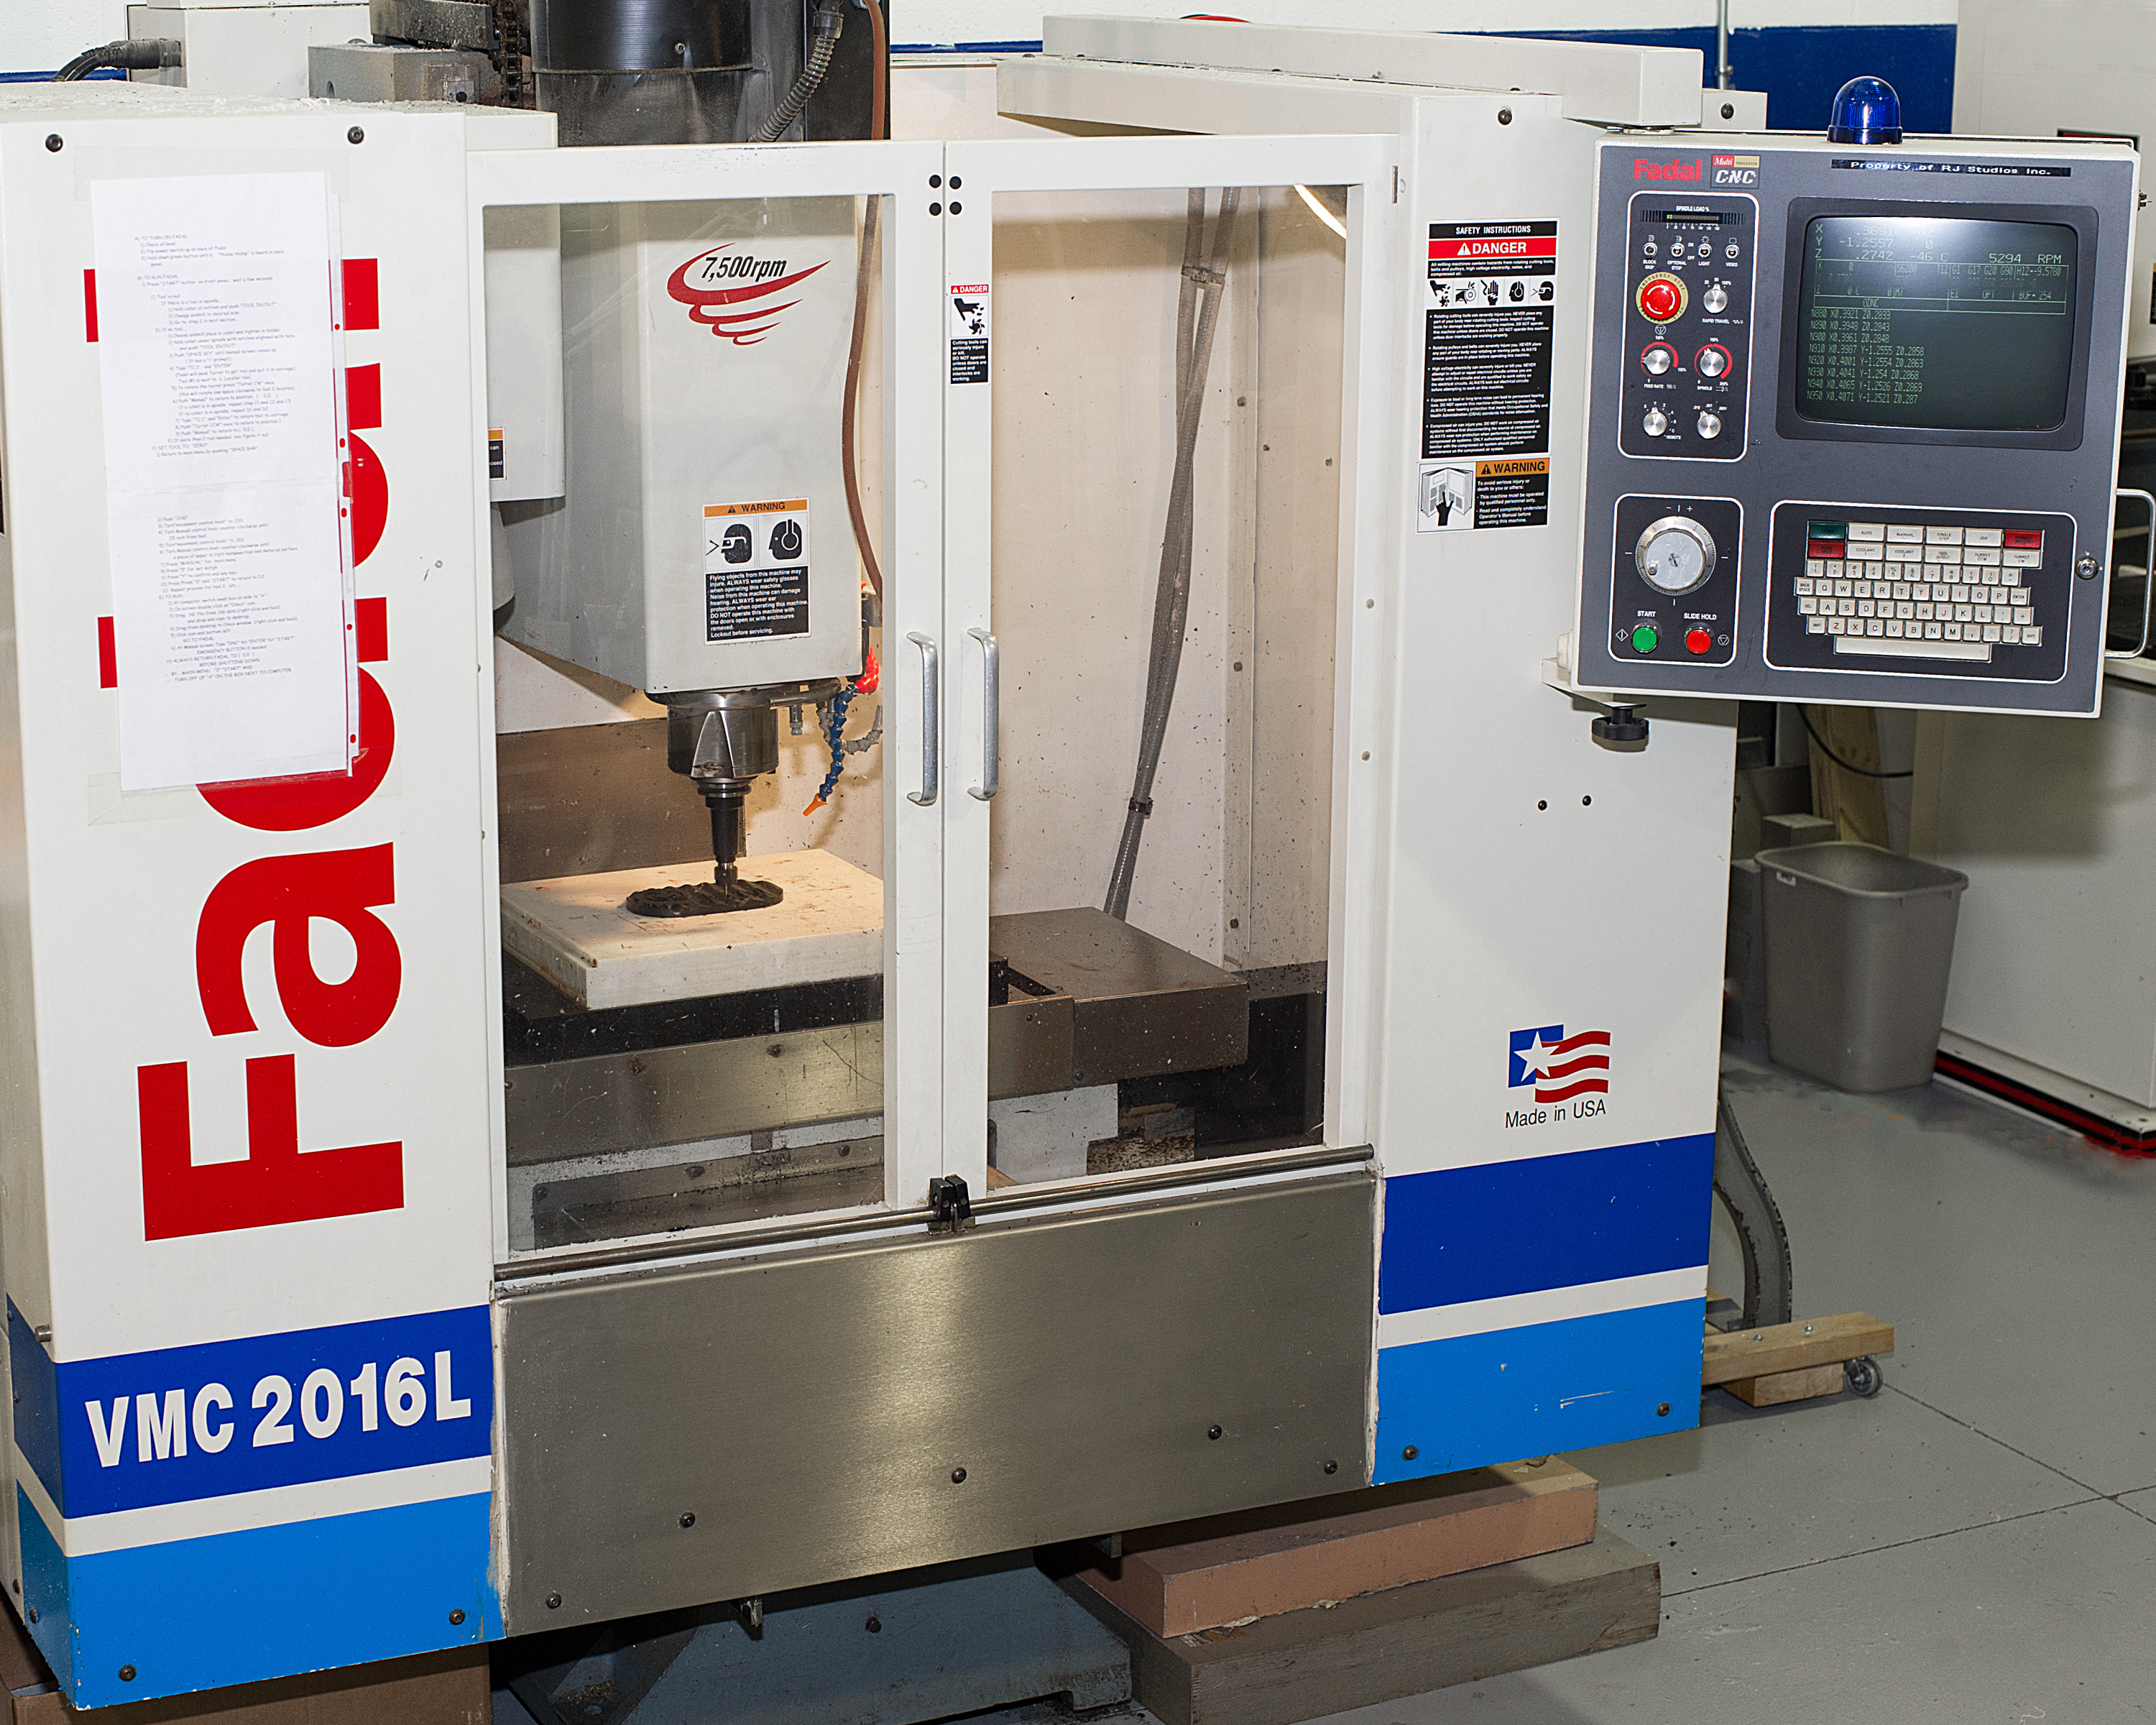 VMC 2016L CNC Machine